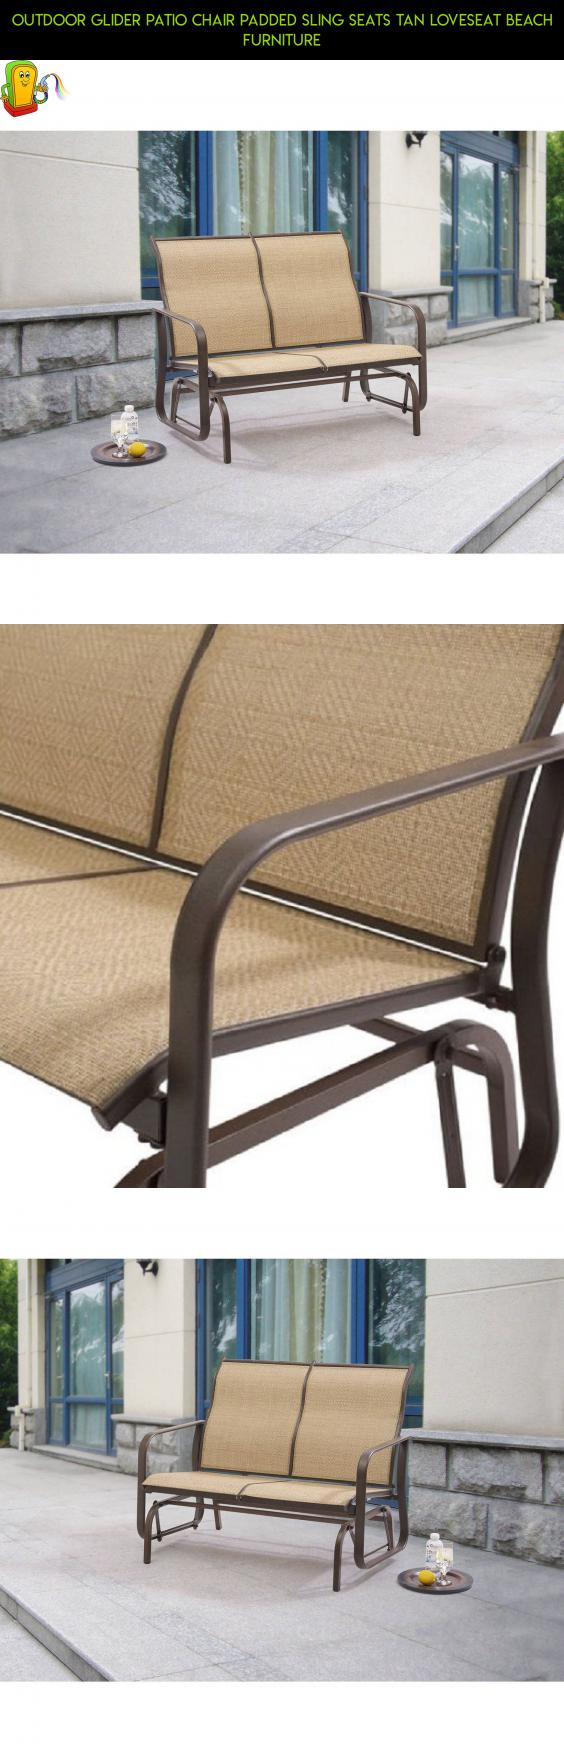 Outdoor glider patio chair padded sling seats tan loveseat beach furniture camera patio